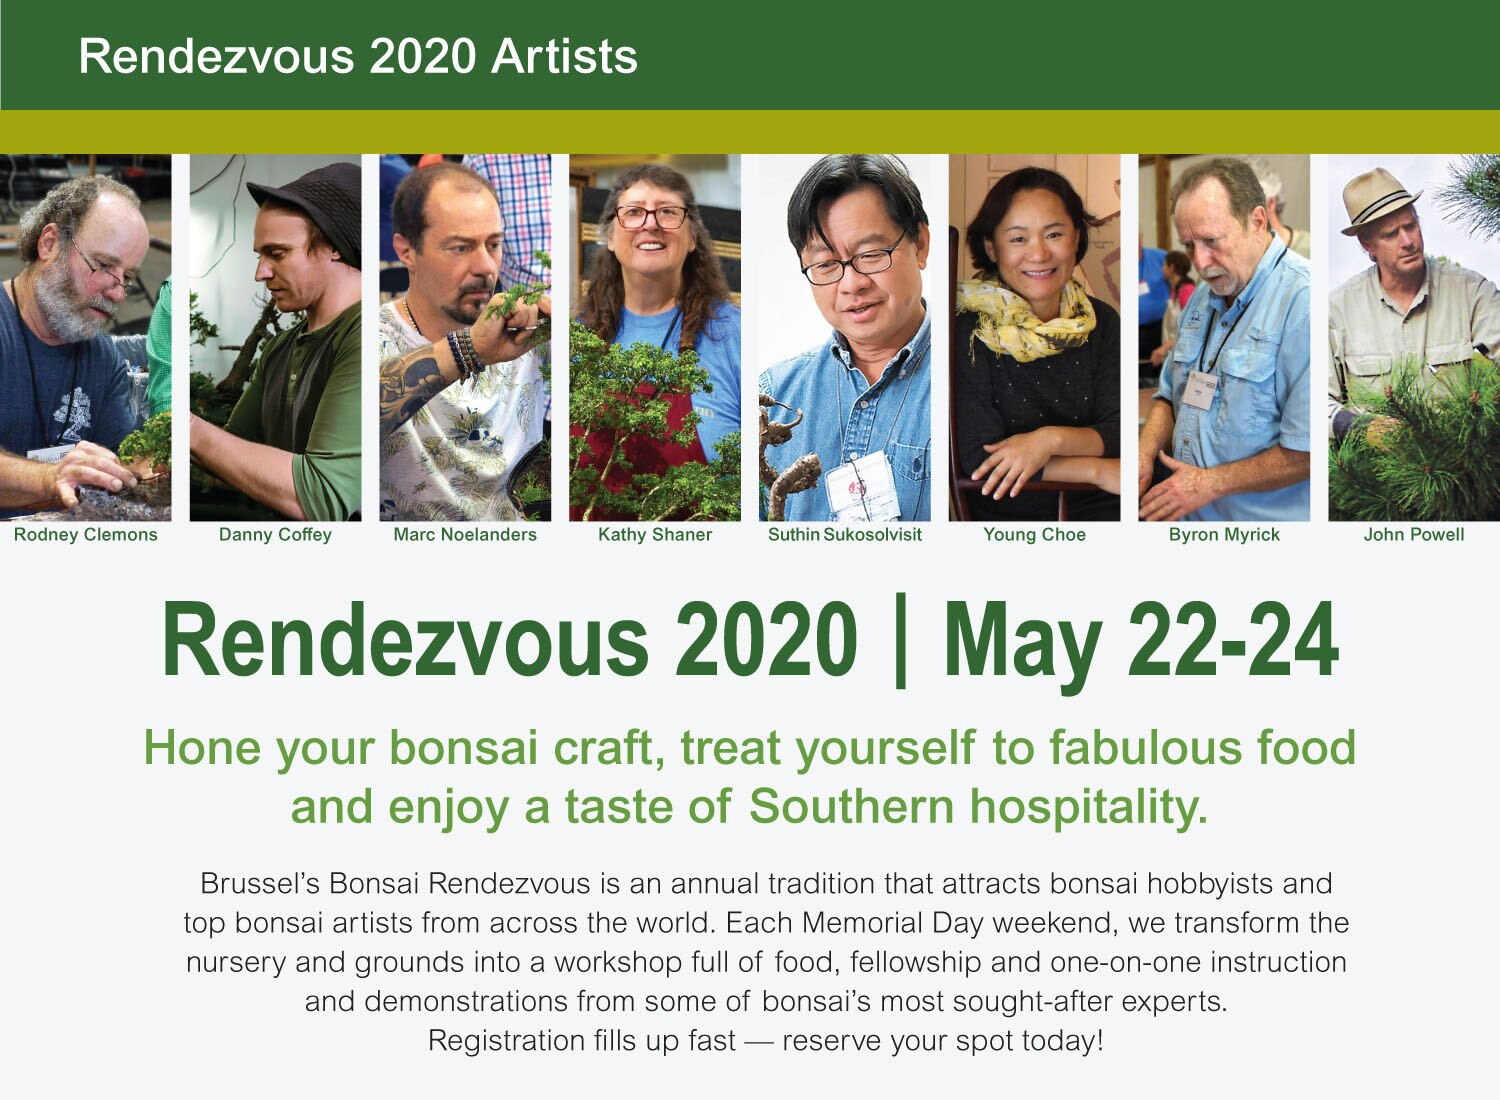 Rendezvous 2020 Artists